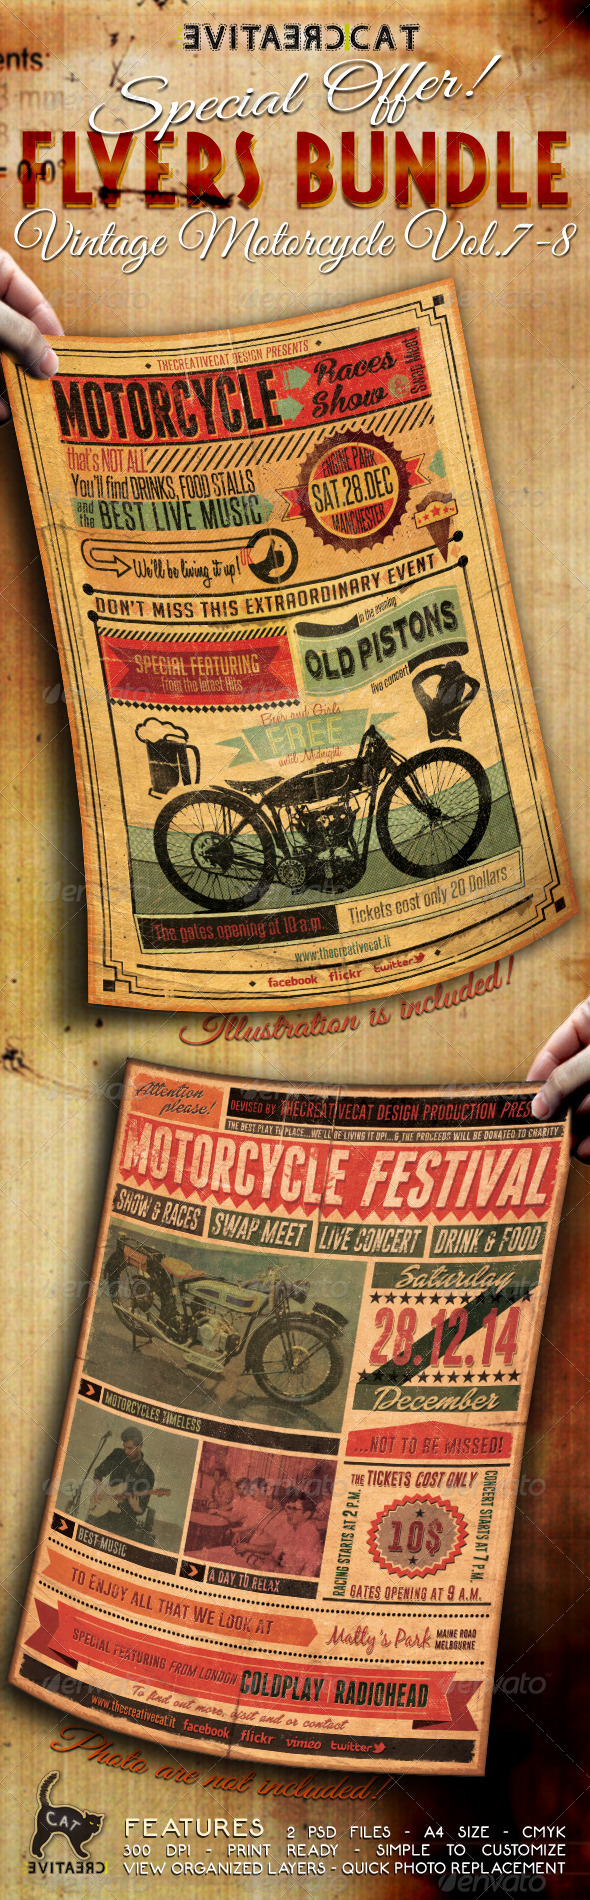 GraphicRiver Vintage Motorcycle Flyer Poster Bundle Vol 7-8 6643751